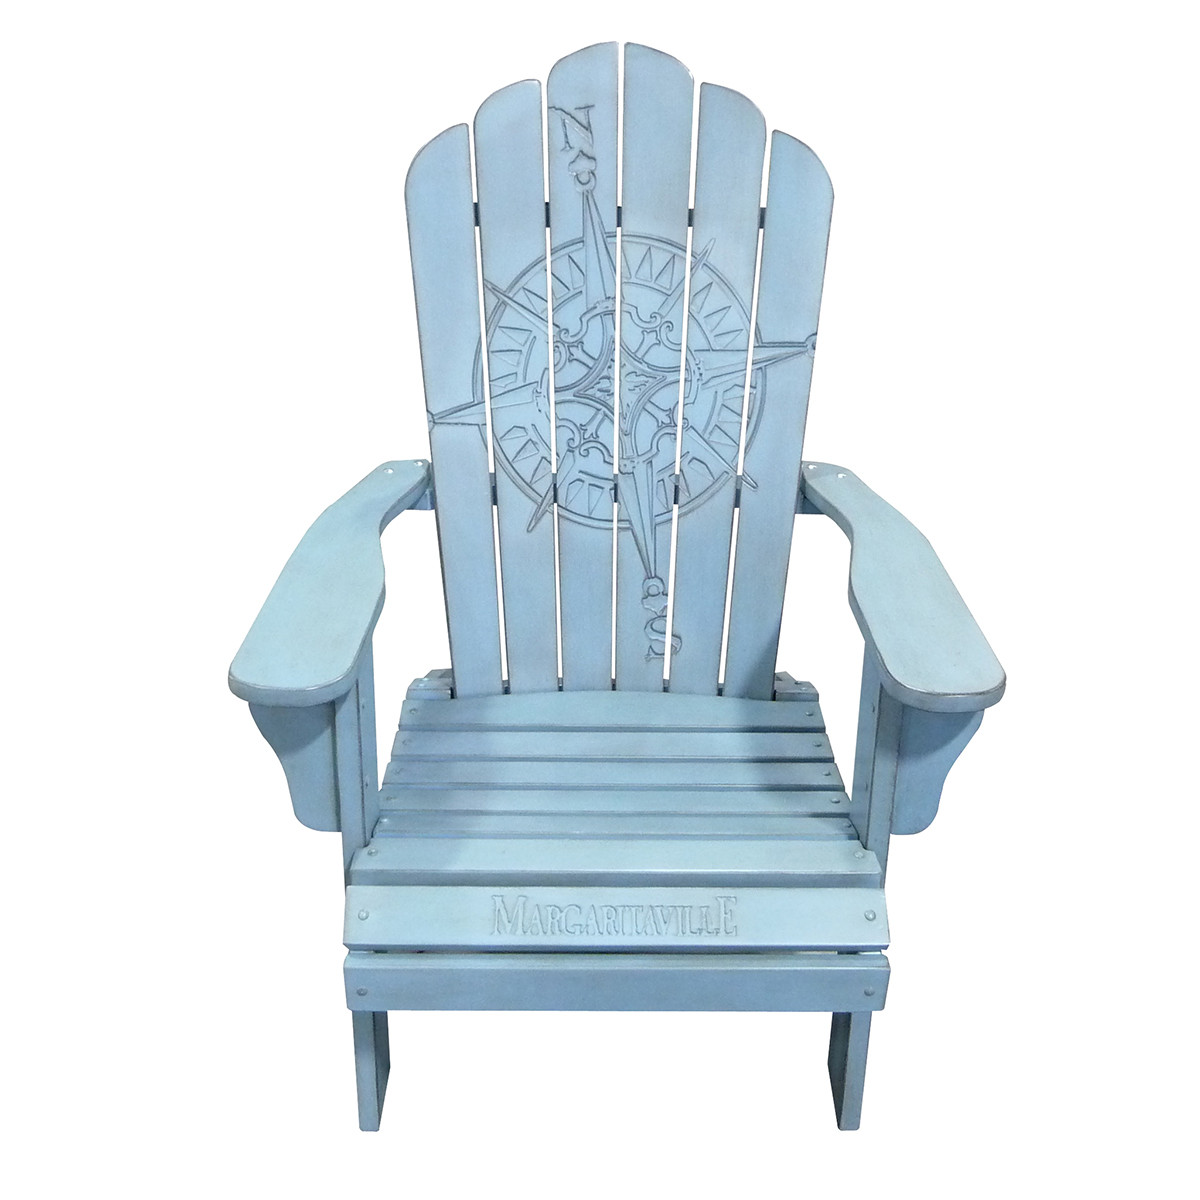 adirondack style plastic chairs uk inflatable chair canada carved compass rose margaritaville apparel store